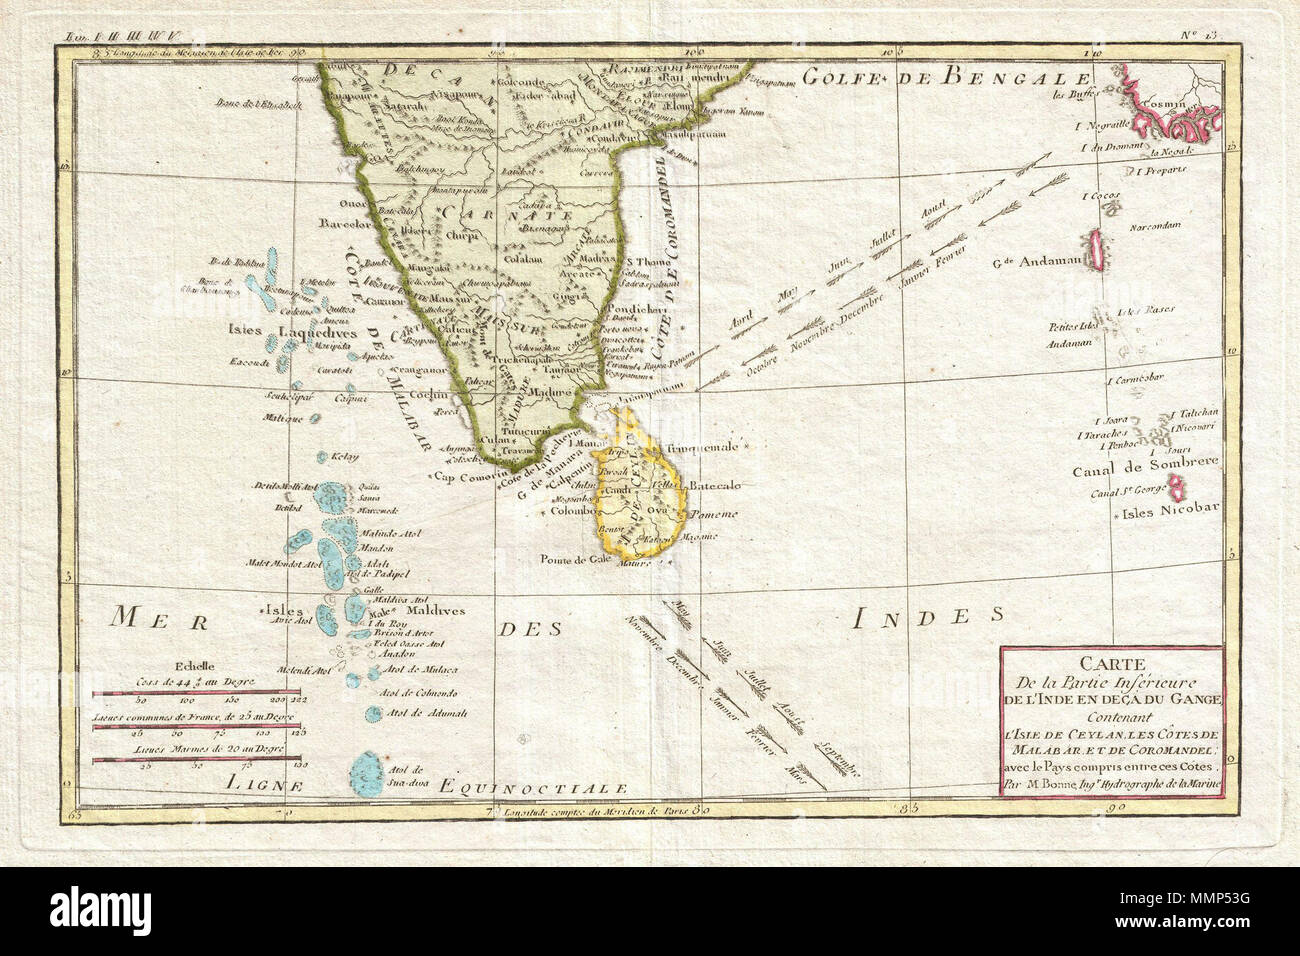 Carte Sri Lanka Maldives.English Attractive 1780 Map Of Southern India By The French